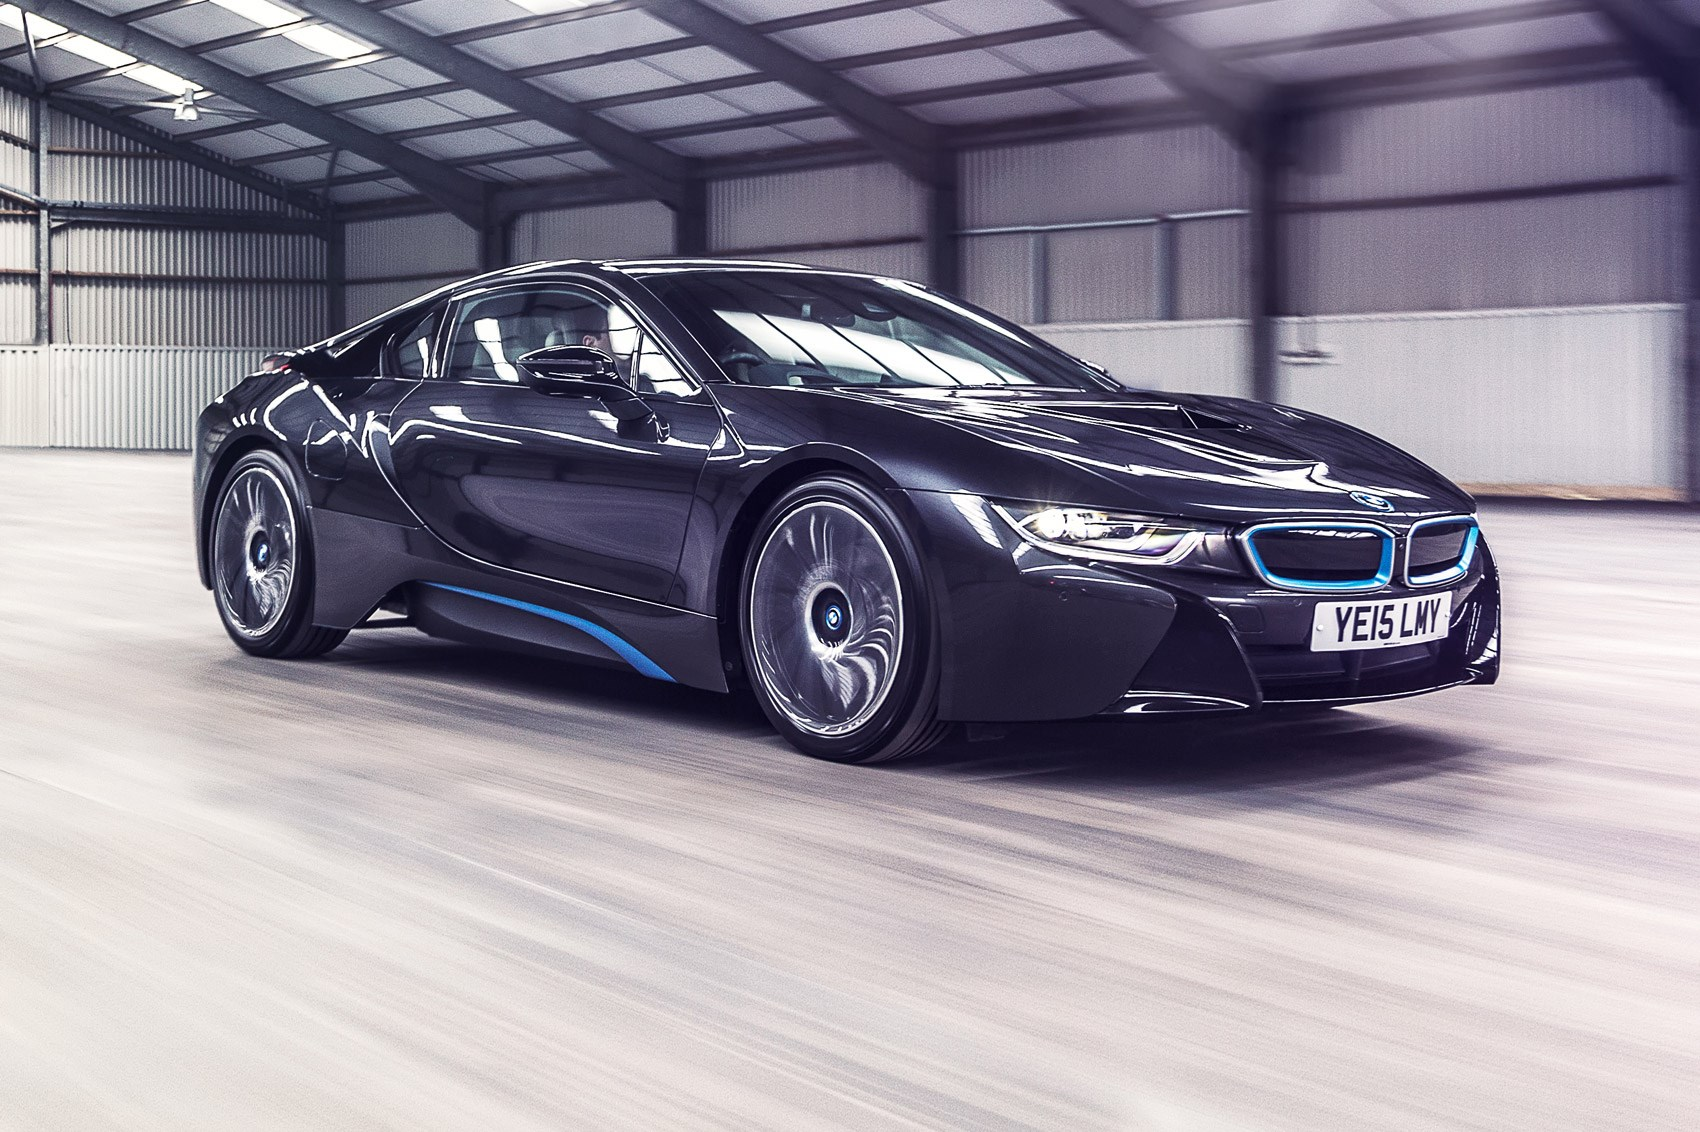 Used car stars 2016 save £35k on a BMW i8 plus 11 other used car